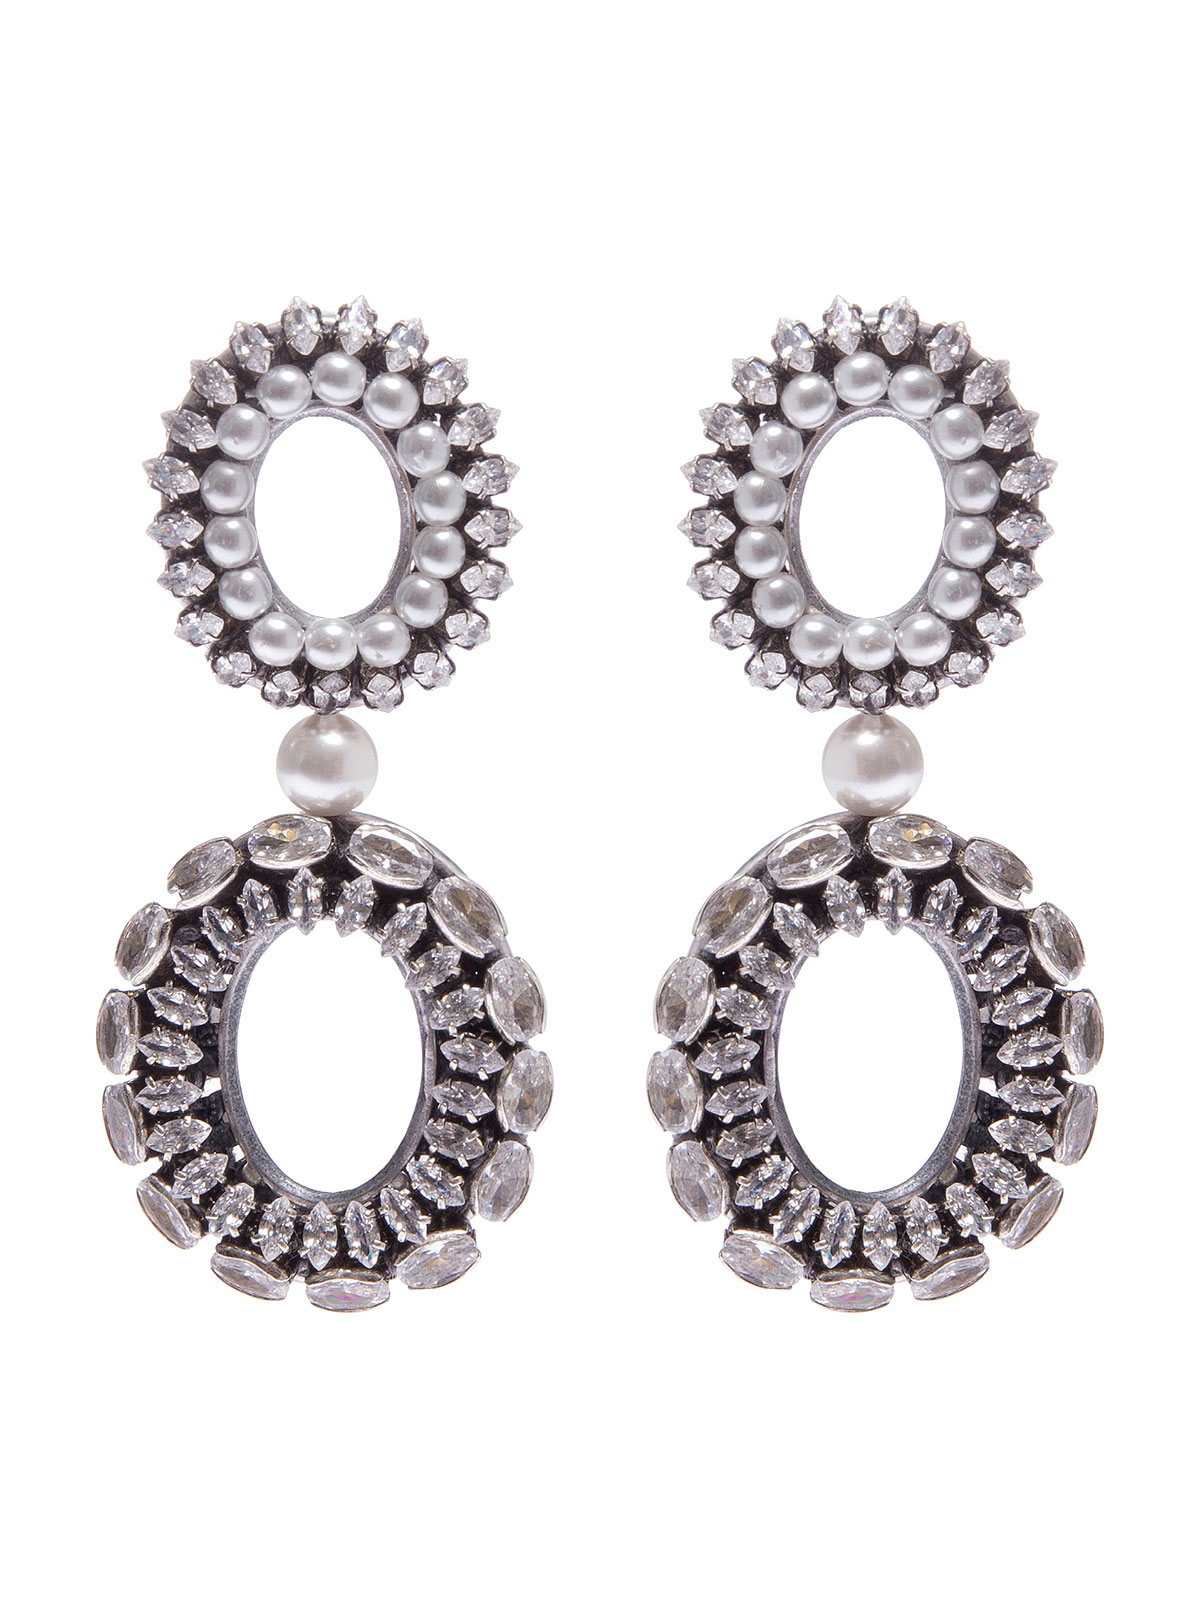 Double oval earrings embellished with crystals